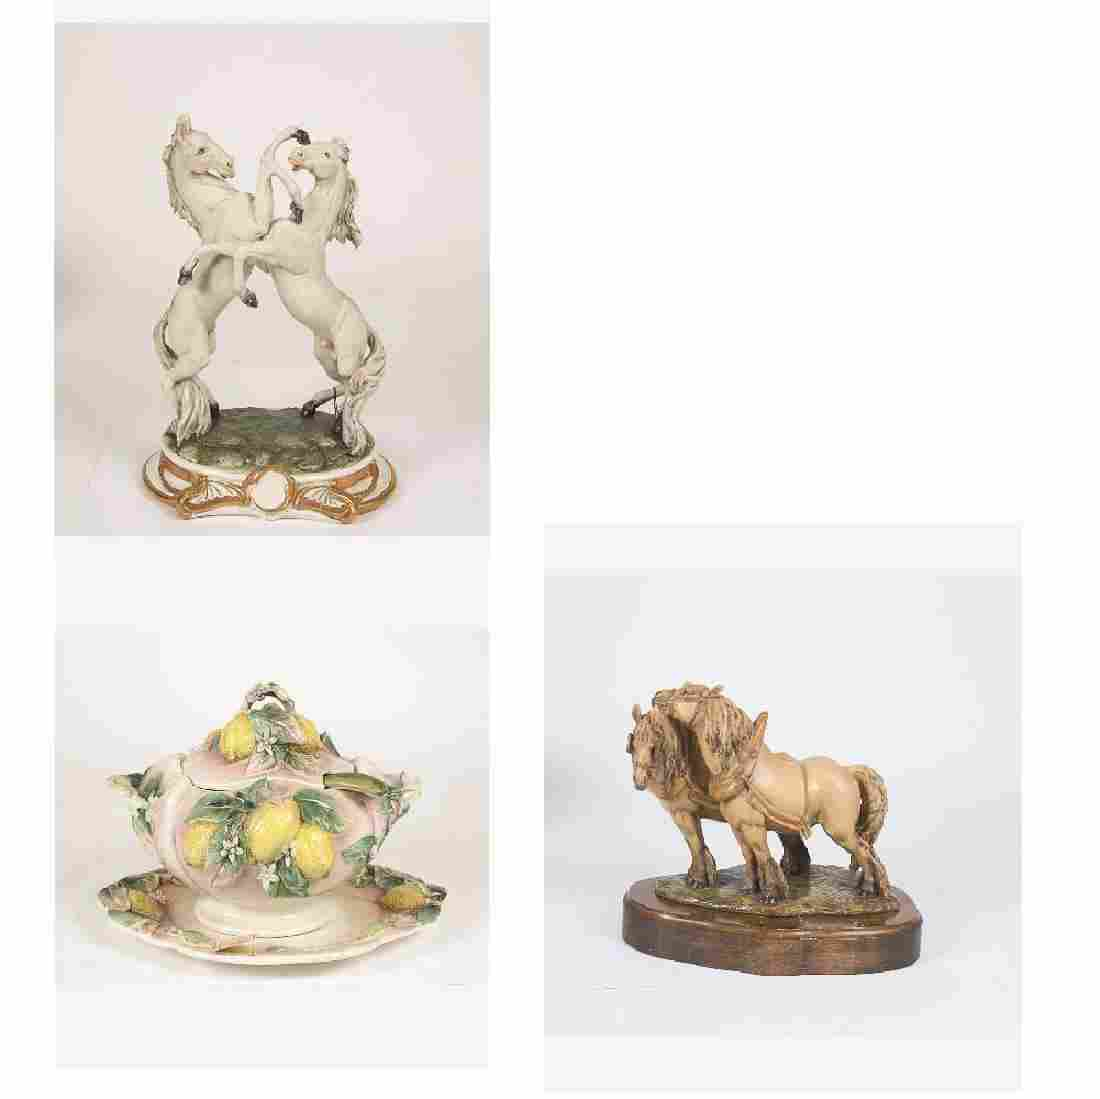 A Miscellaneous Collection of Capodimonte Porcelain and